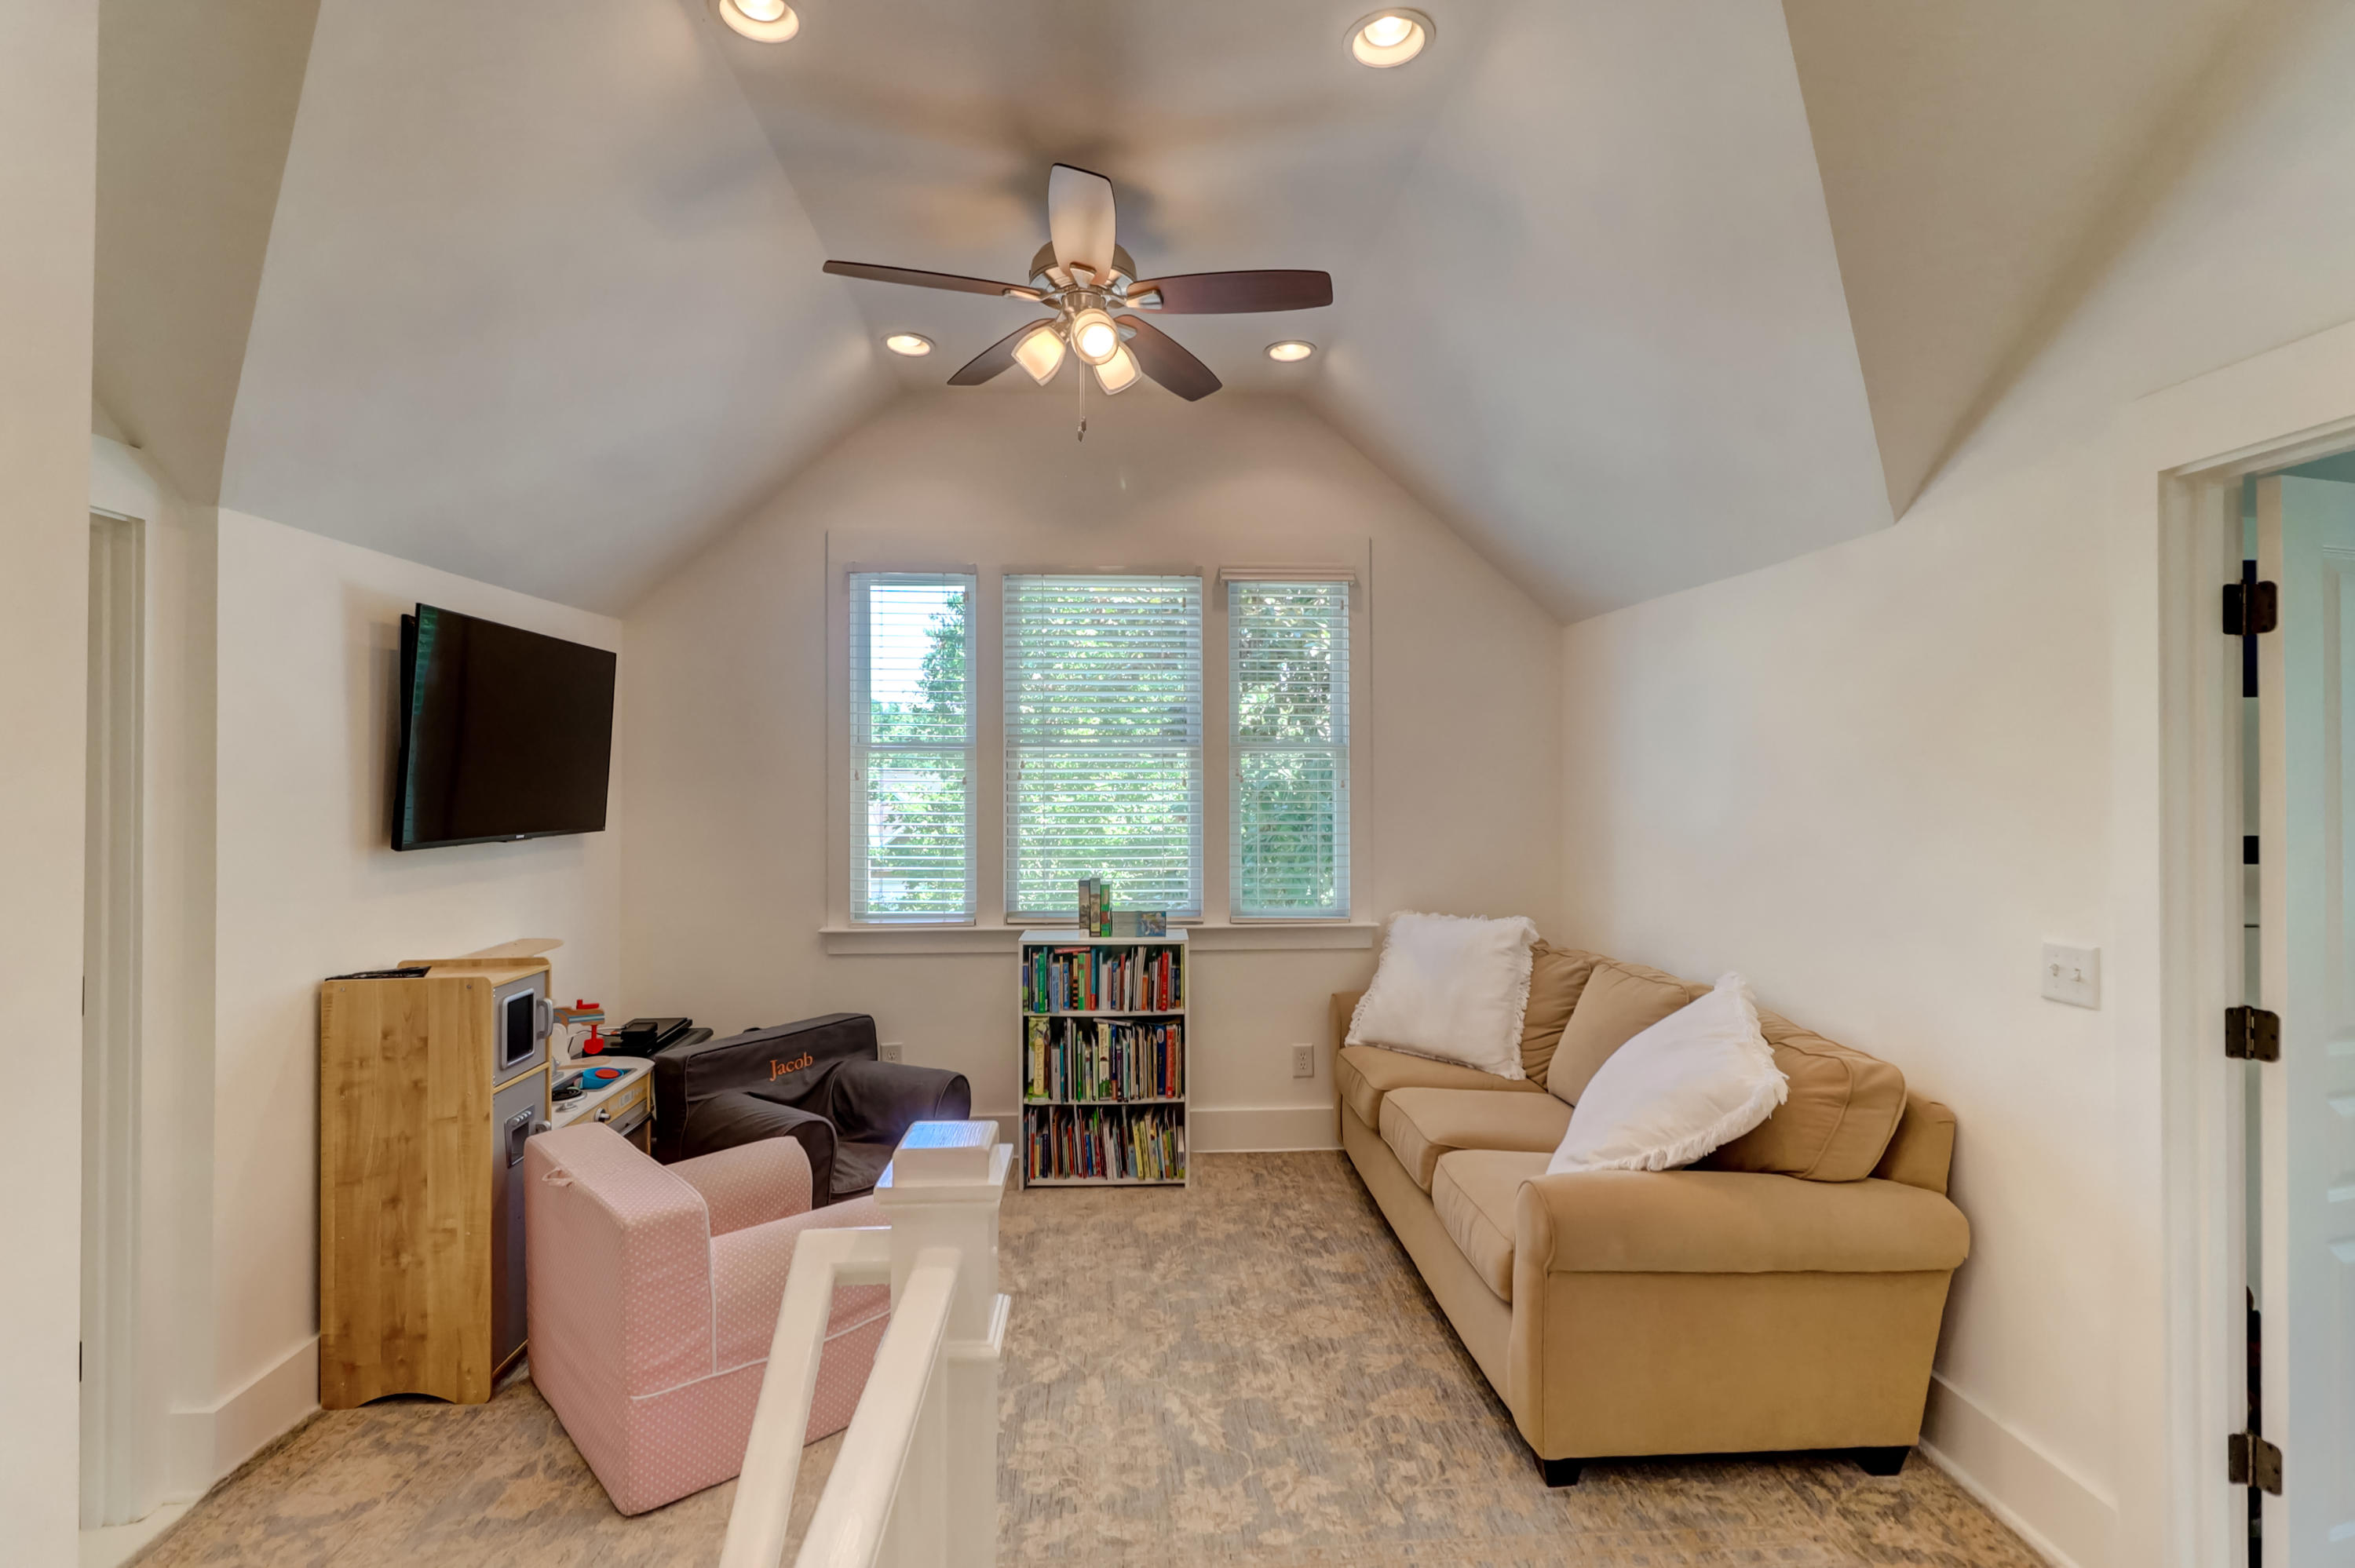 The Villages In St Johns Woods Homes For Sale - 5056 Coral Reef Dr, Johns Island, SC - 29